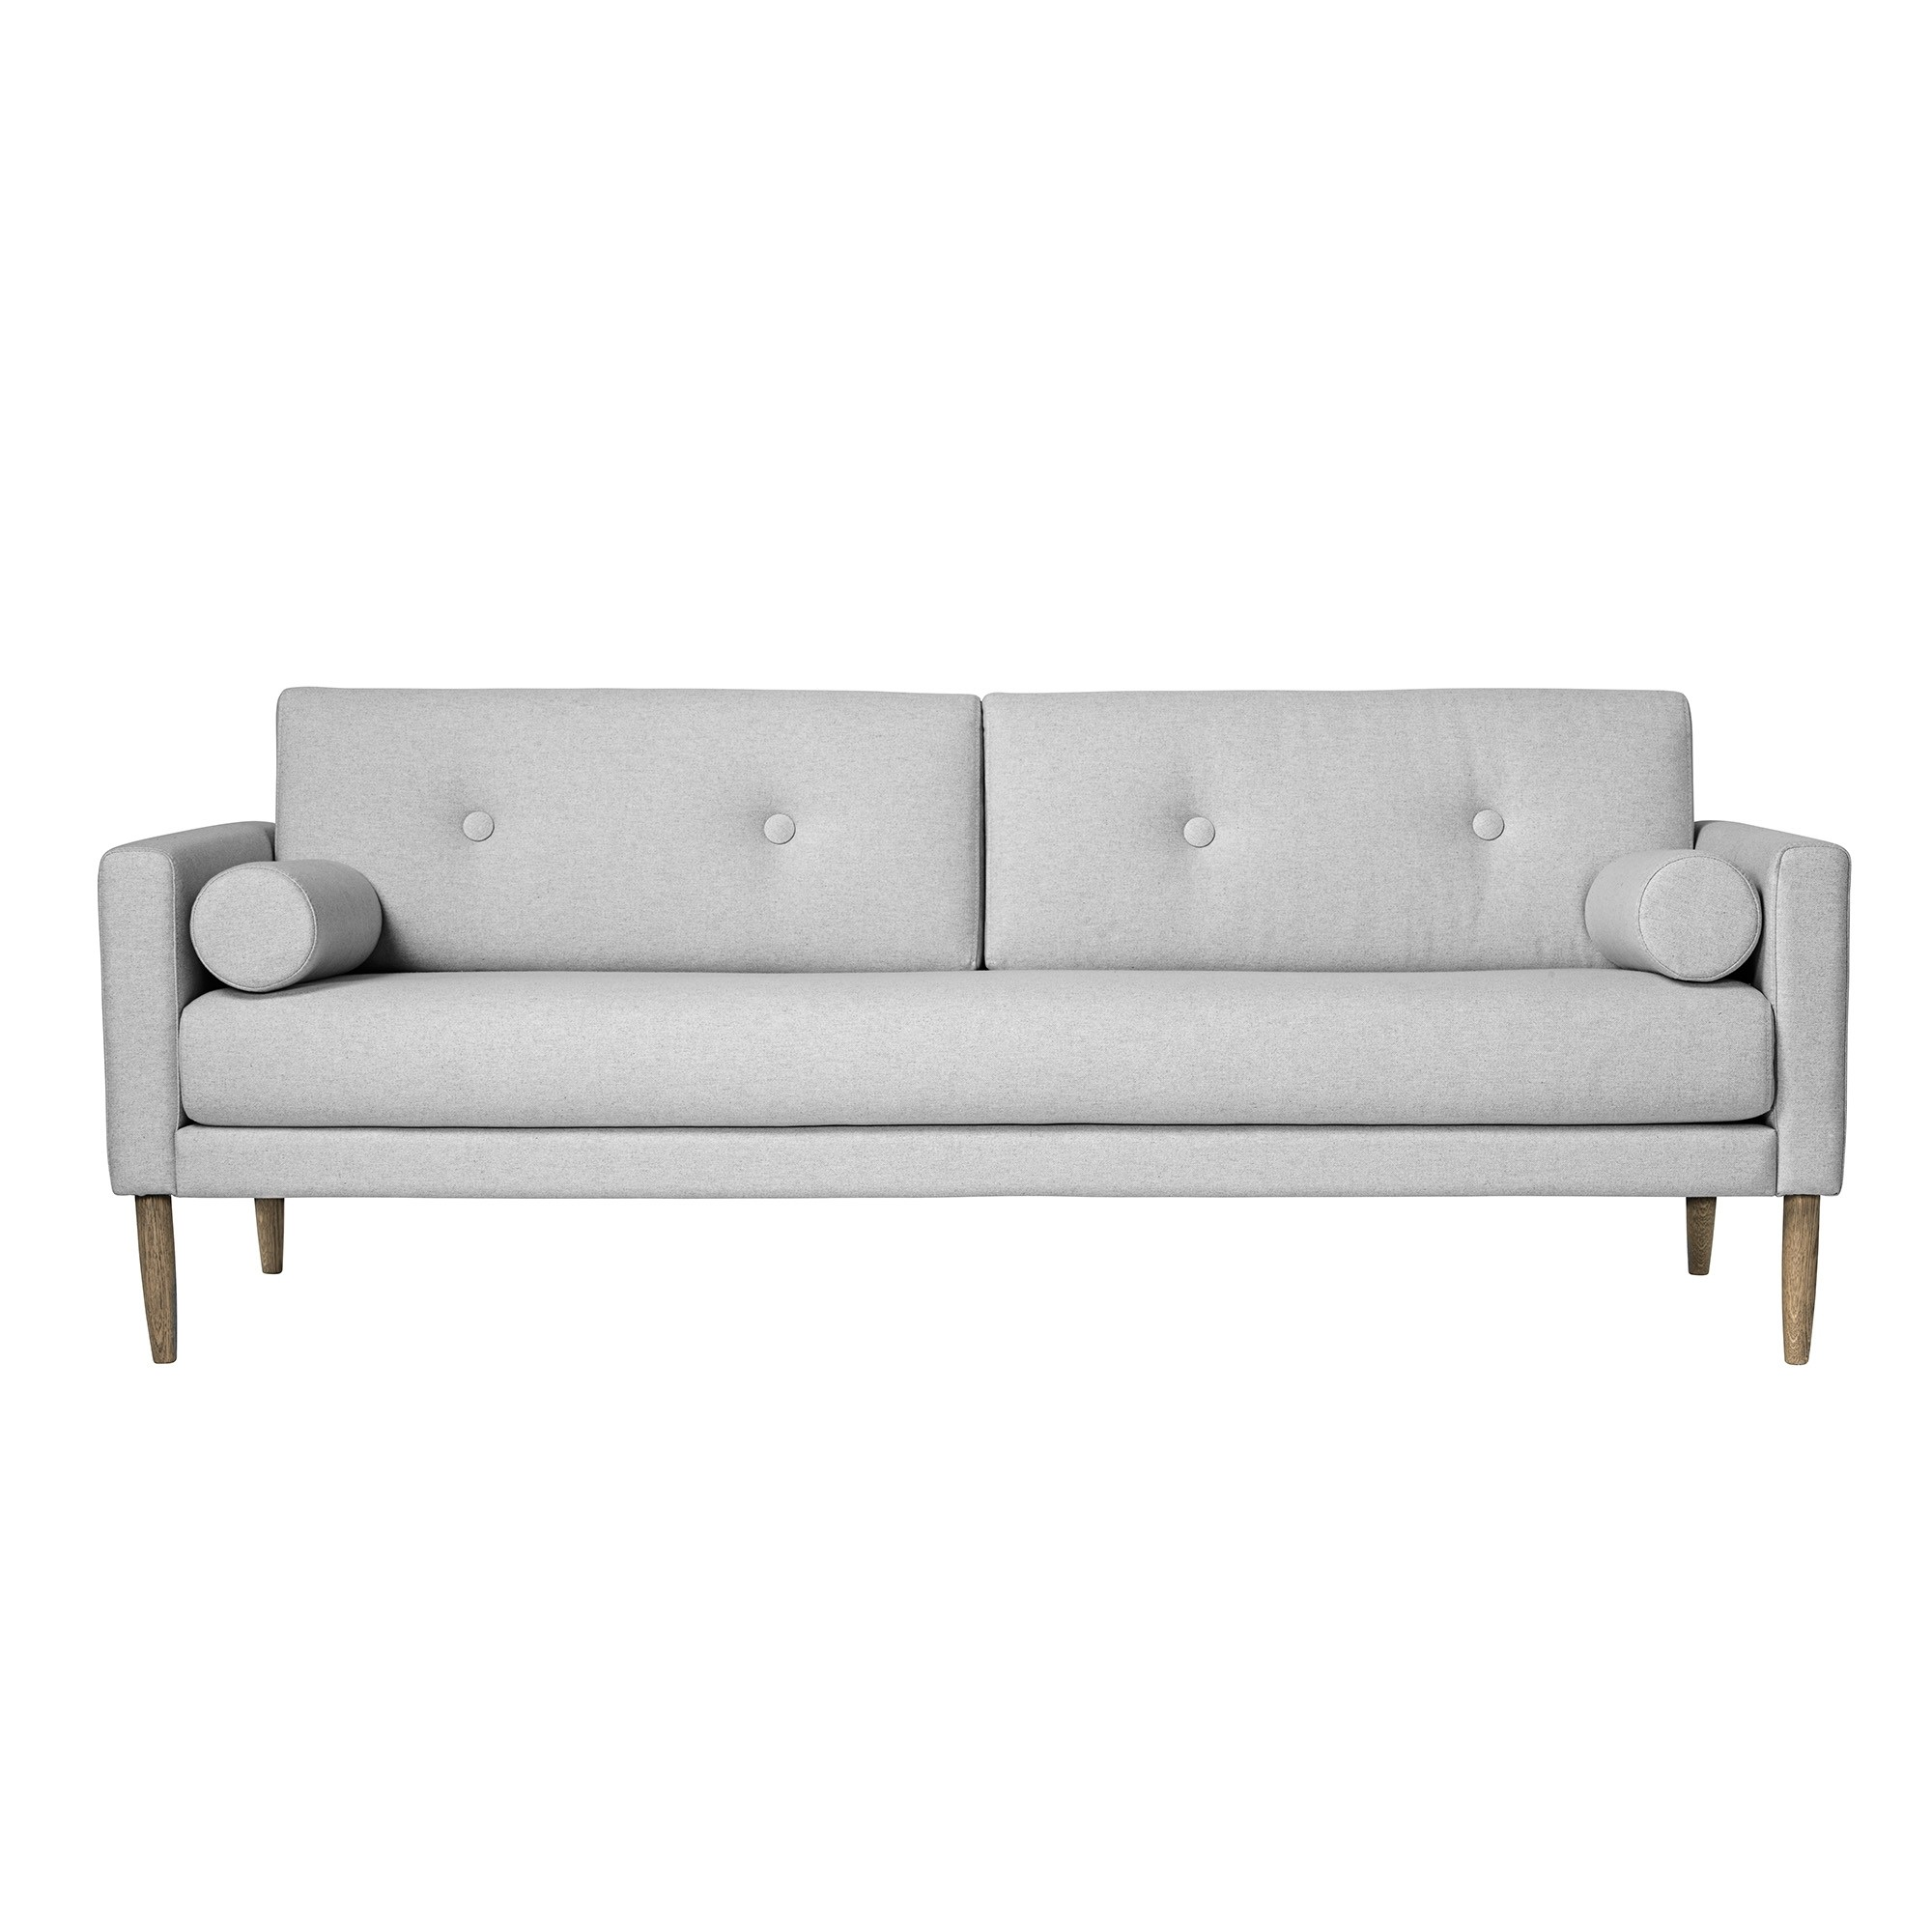 Image of   Bloomingville calm sofa (grÅ)